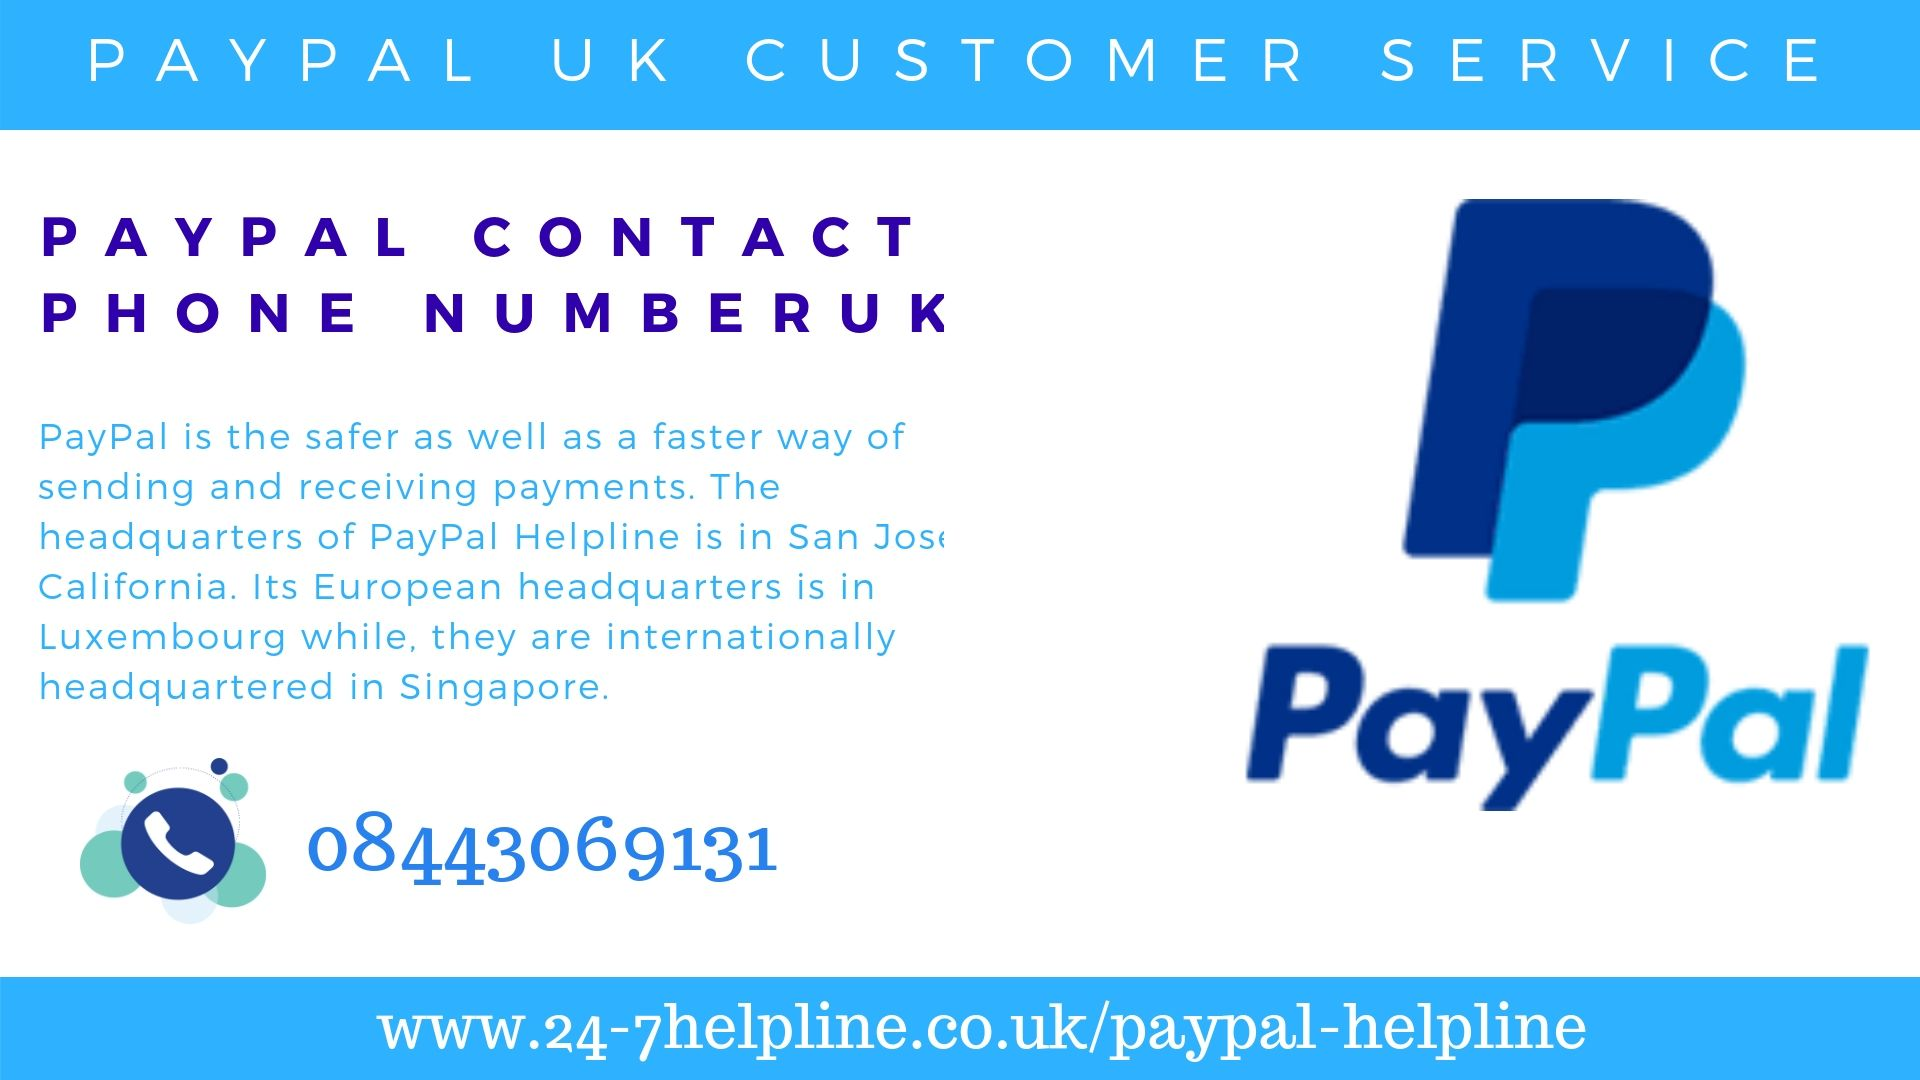 Paypal Customer Service Uk Provides Secure Payment Services For Small And Large Businesses Dial 0844 306 9131 For Answers To All Paypal Customer Service Phone